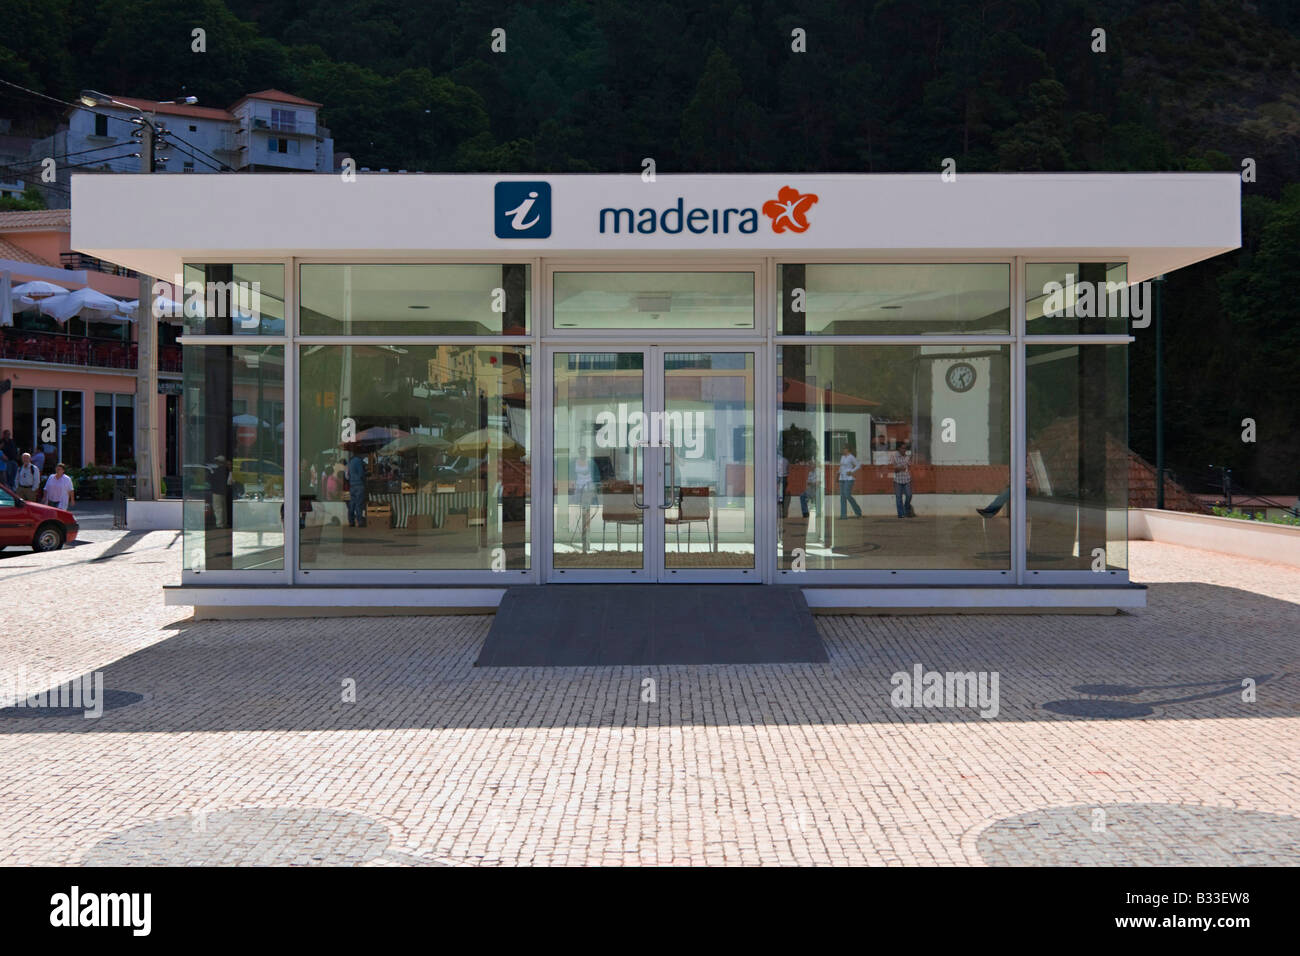 Madeira Travel Information Point - Stock Image